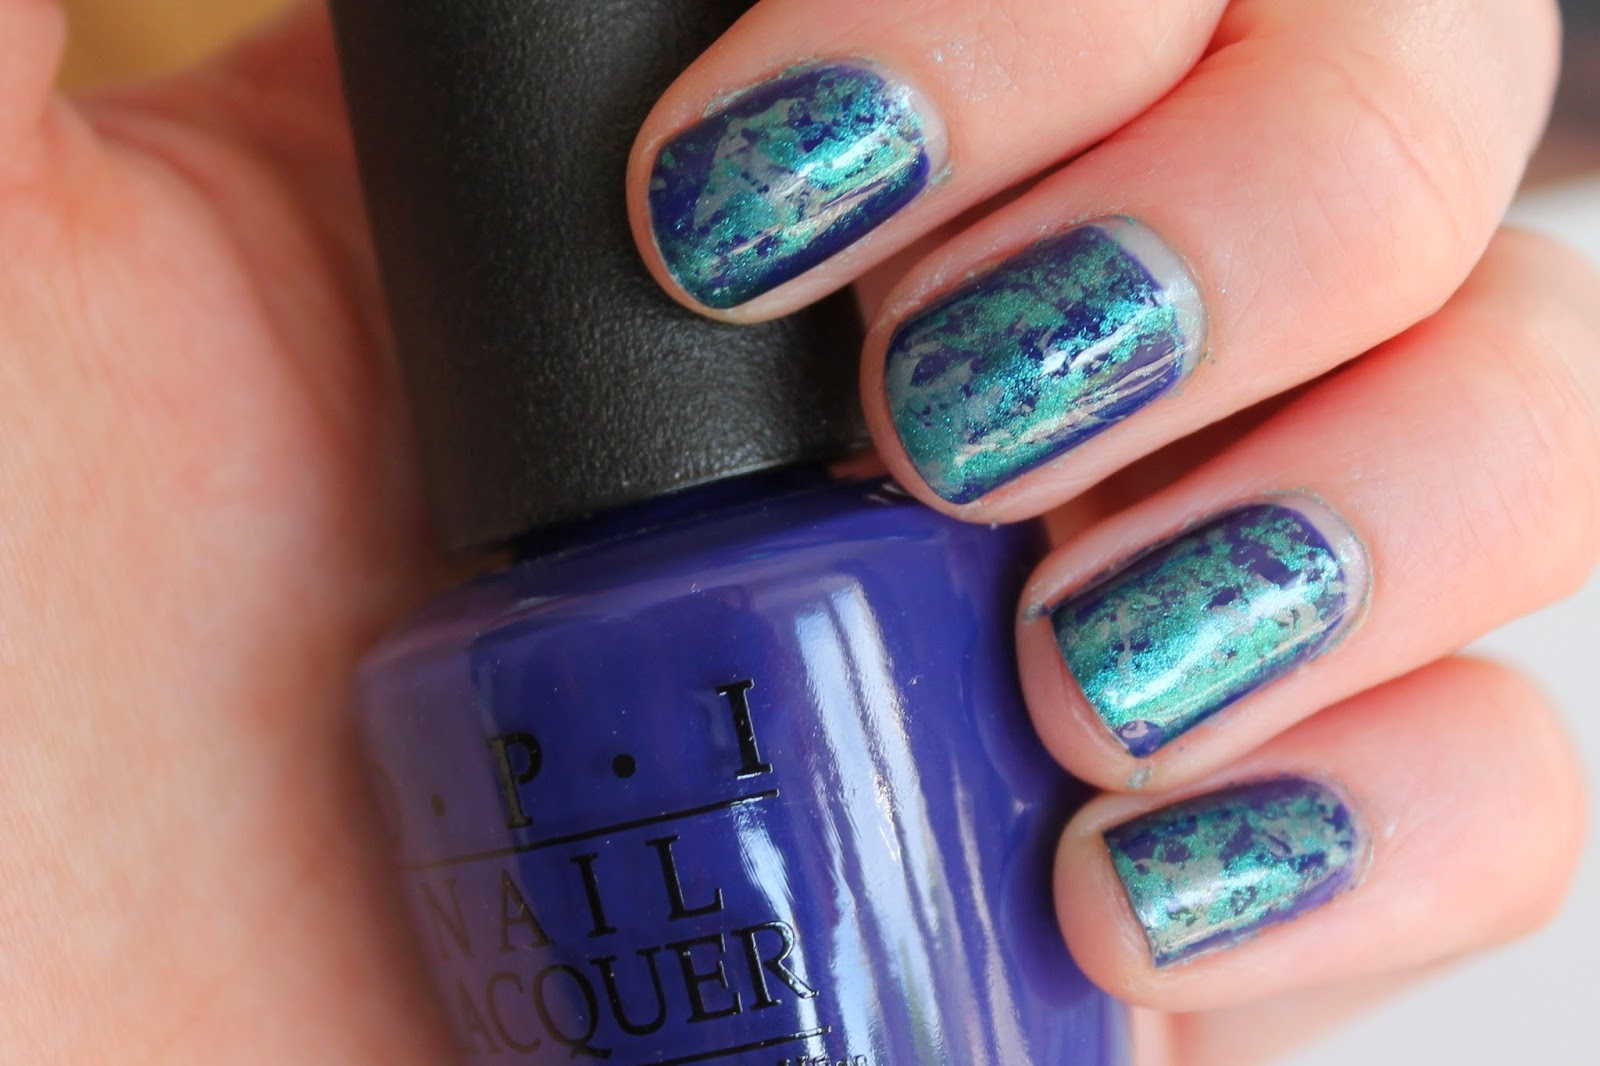 Cling Film Nail Art Tutorial - Blue Essie OPI